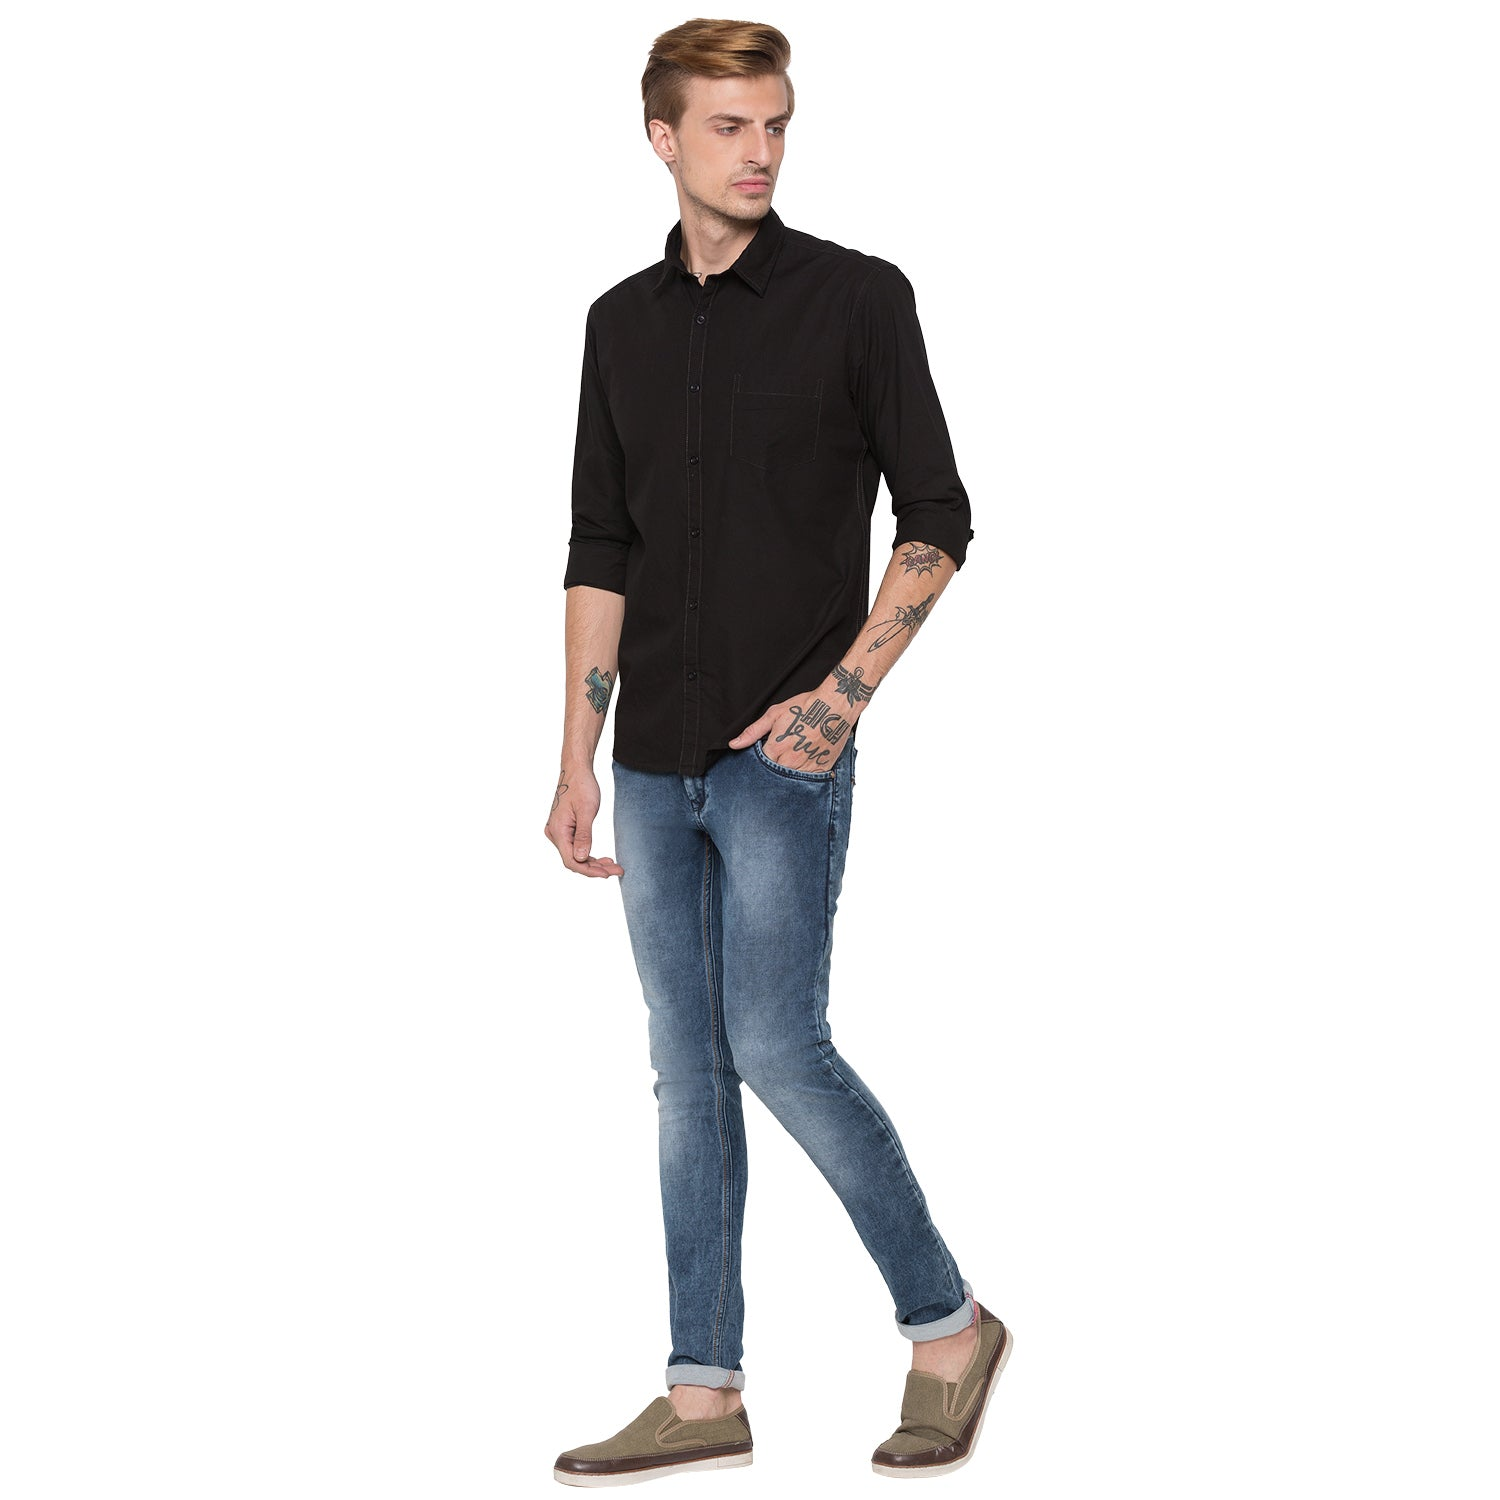 Globus Black Solid Shirt-4